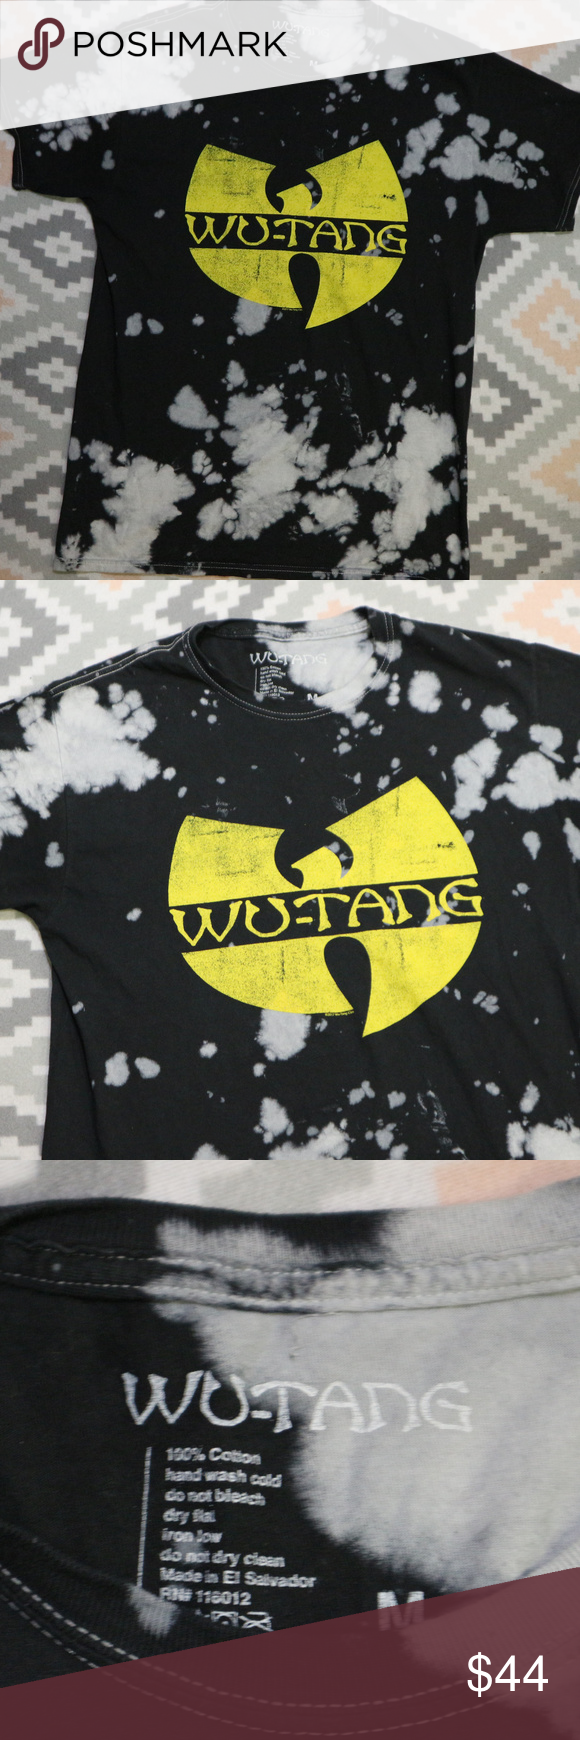 455c231d1c1 WU-TANG Clan Tie-dye Tee Excellent condition inside and out